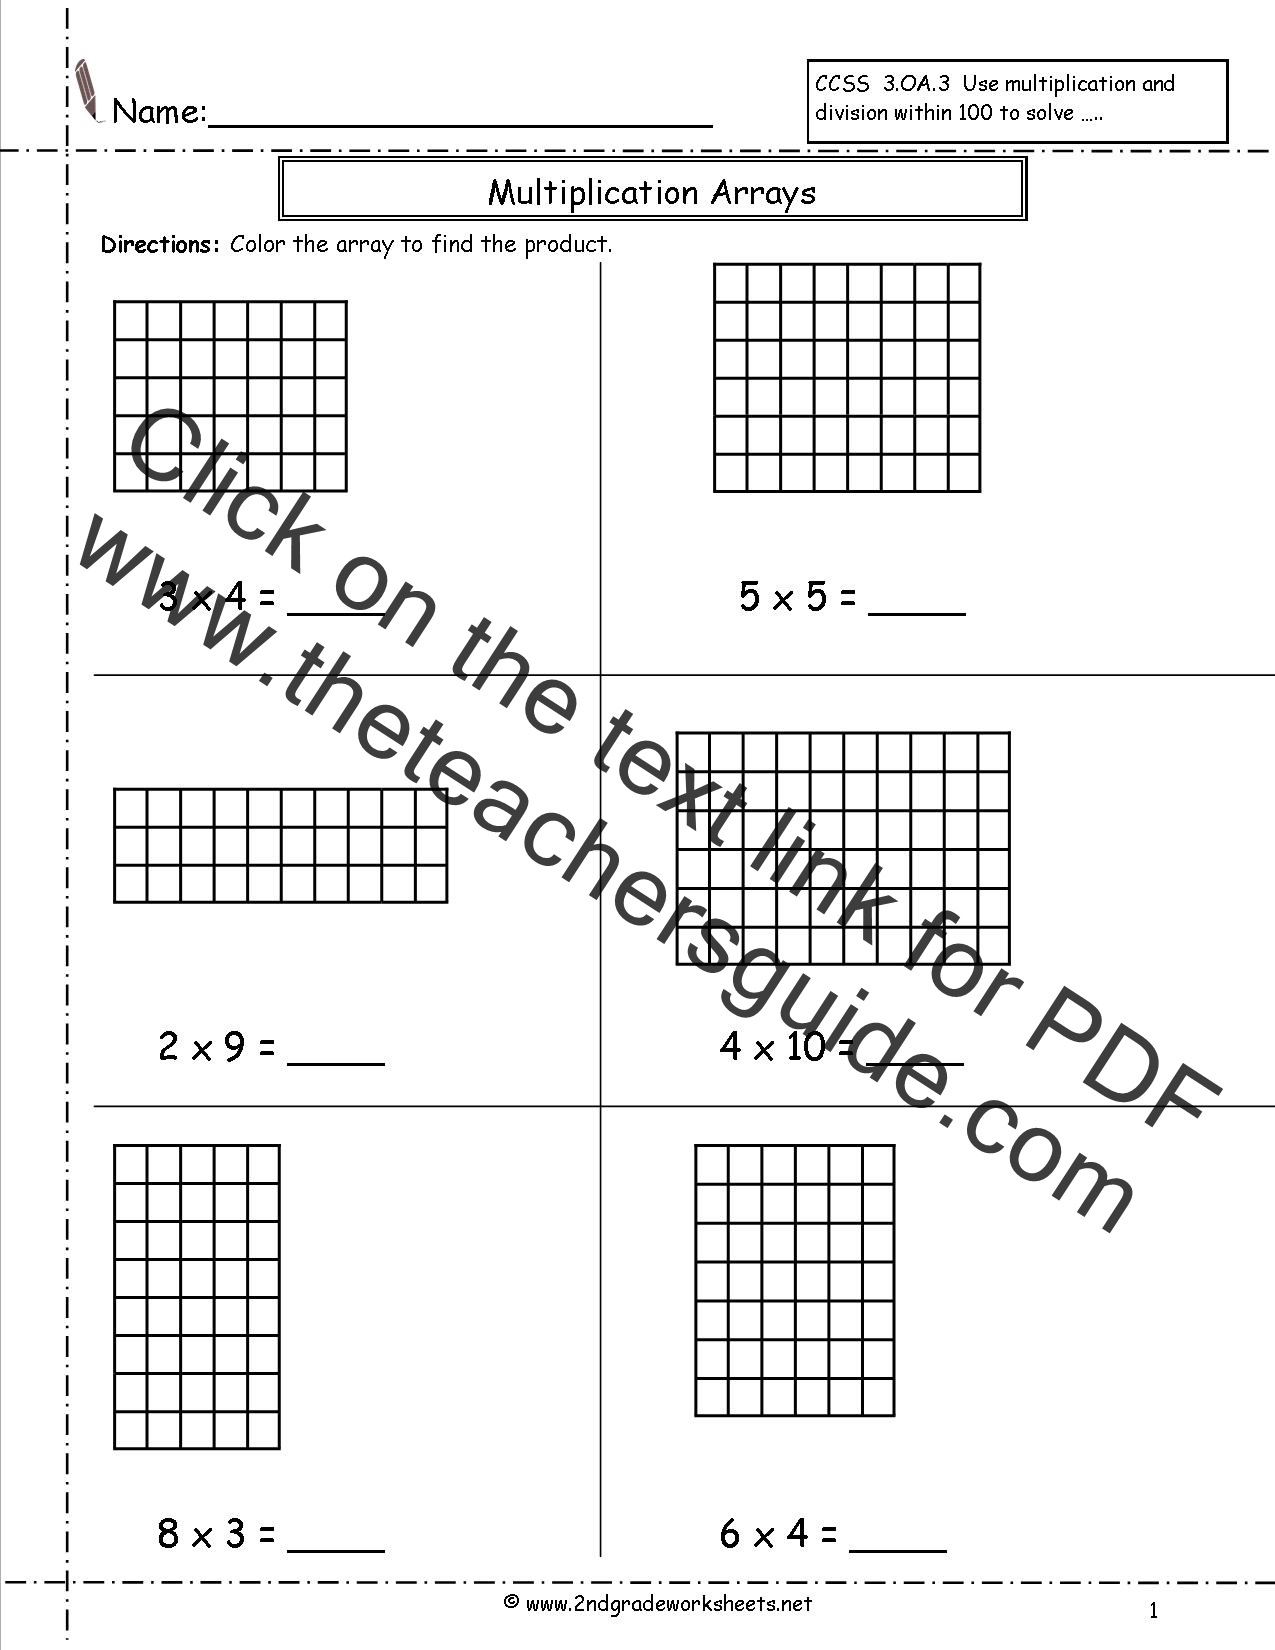 worksheet Elementary Division Worksheets multiplication arrays worksheets worksheet